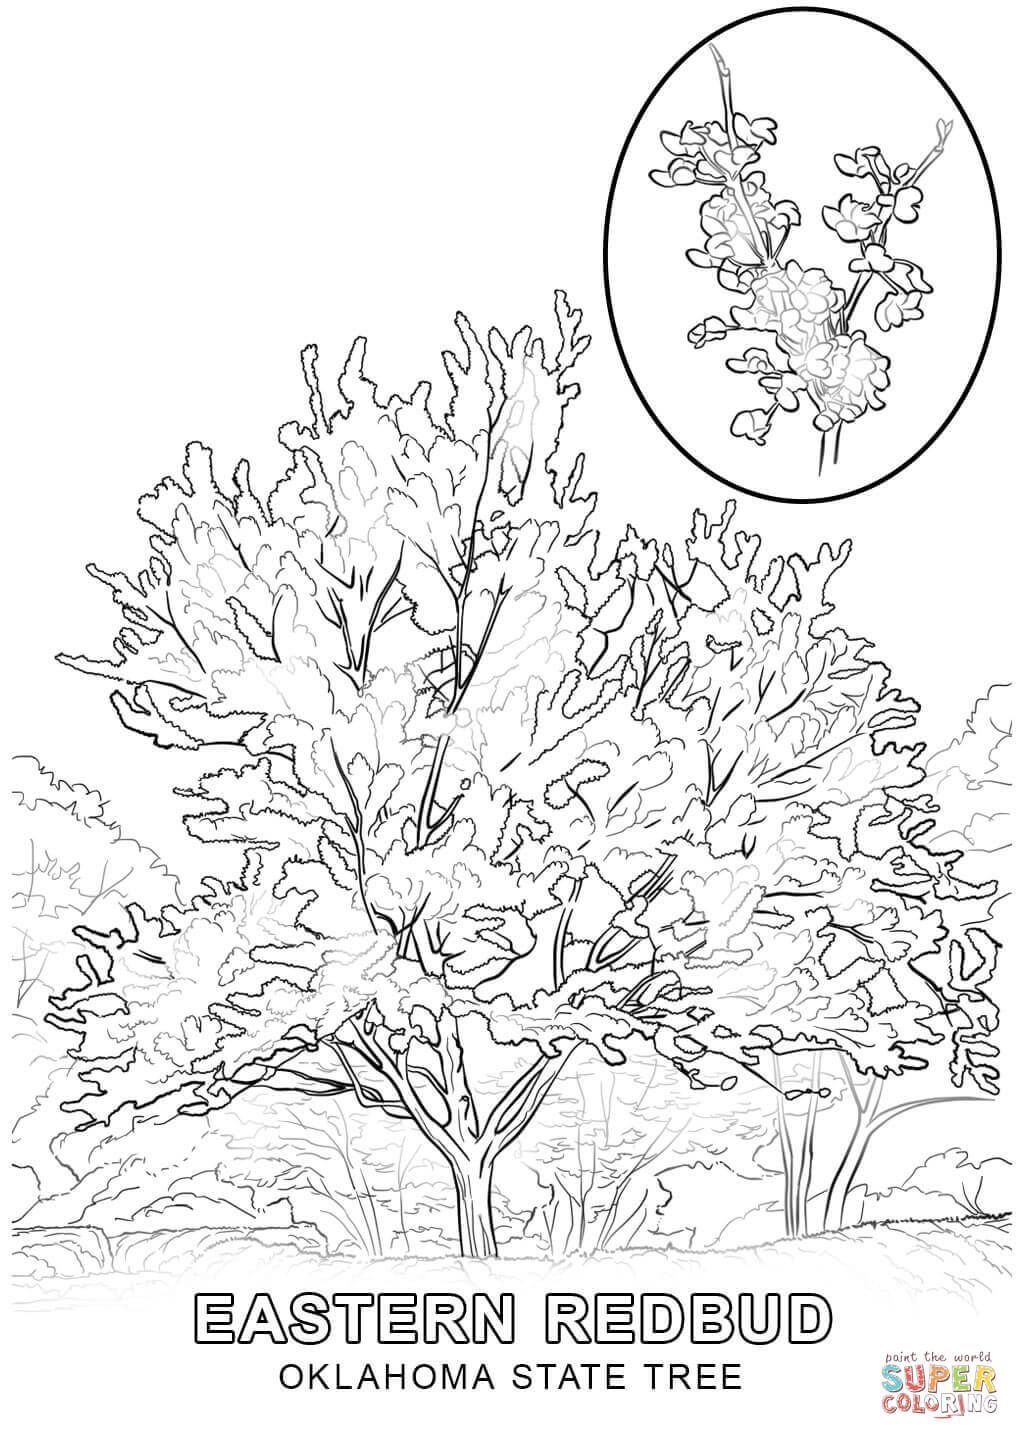 Click The Oklahoma State Tree Coloring Pages To View Printable Version Or Color It Online